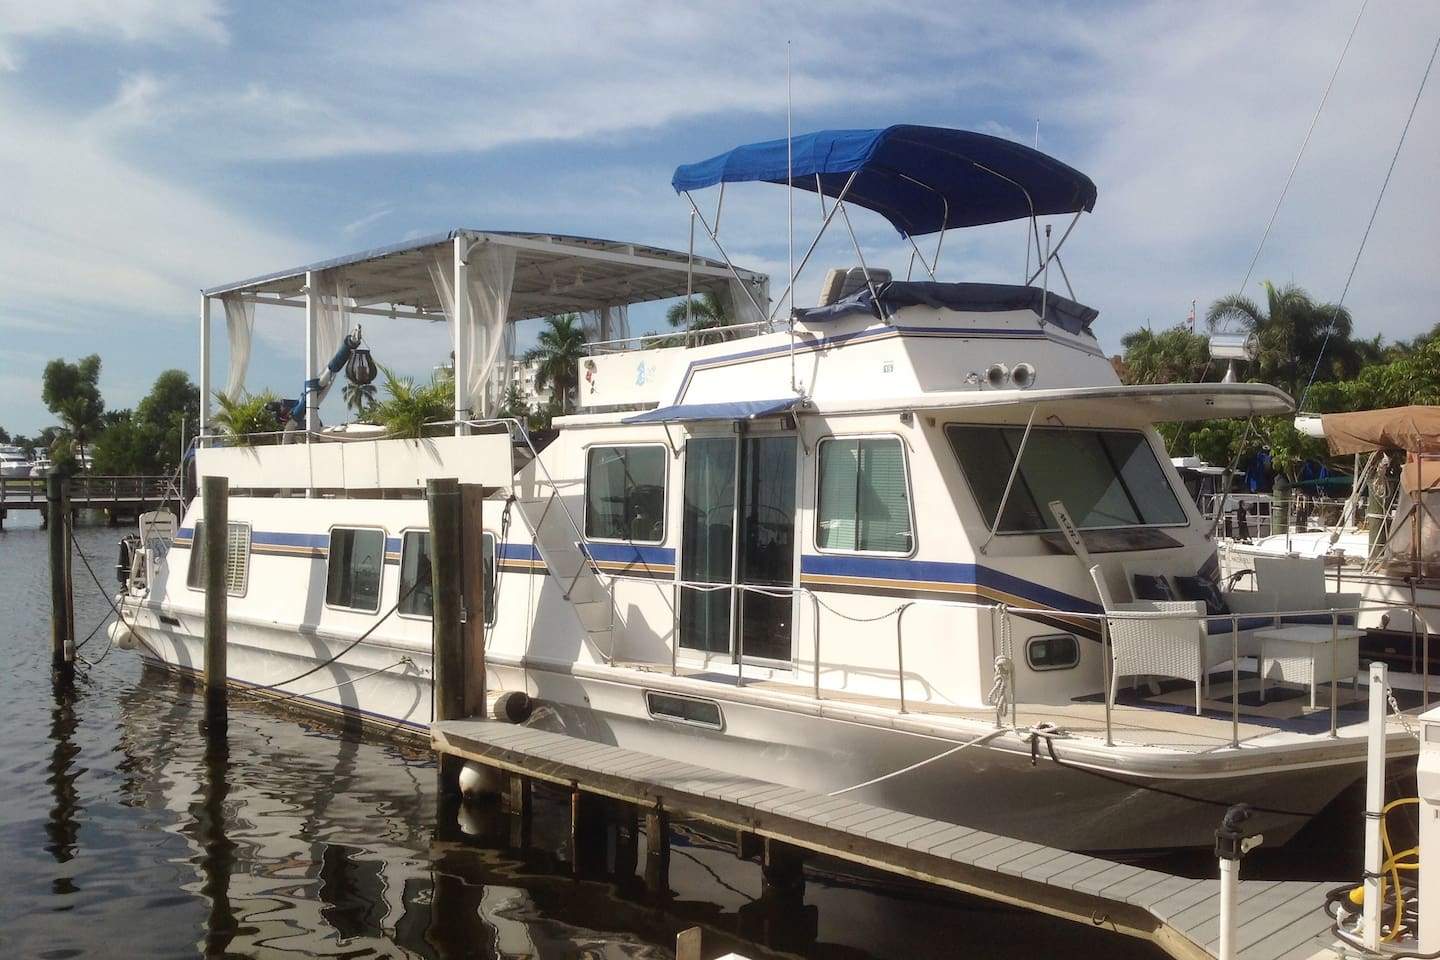 Beautiful 52 Foot Houseboat Located in Old Naples on Naples Bay